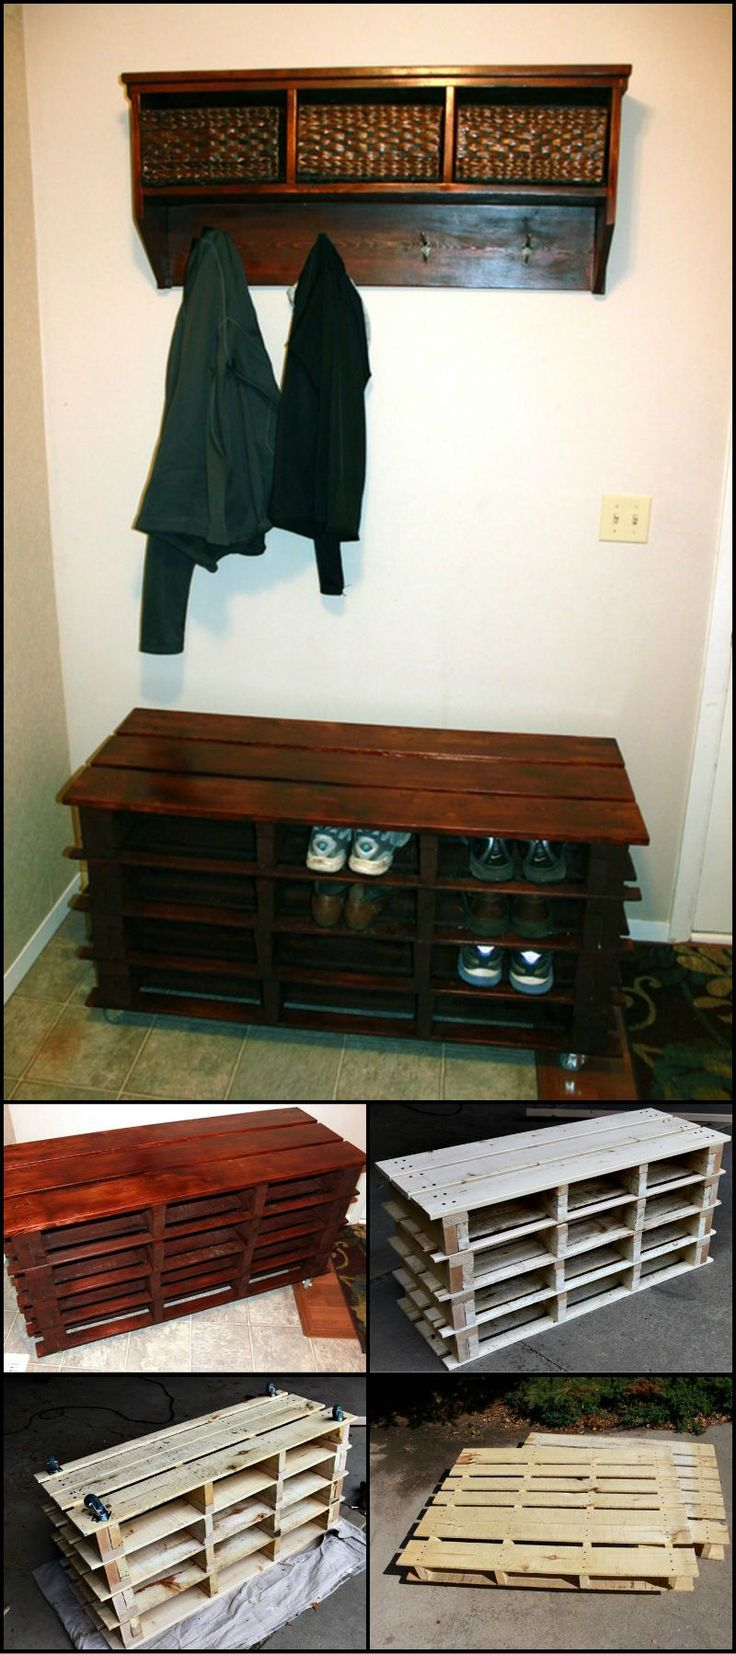 Made from recycled pallets, this creation will give you a place to store the shoes, bags and everyday clutter that accumulates at the front door.  For more ideas on how to reuse pallets view the full collection on our site at http://theownerbuildernetwork.co/x4vr  This project proves that you don't need to spend heaps of money on extra storage space.